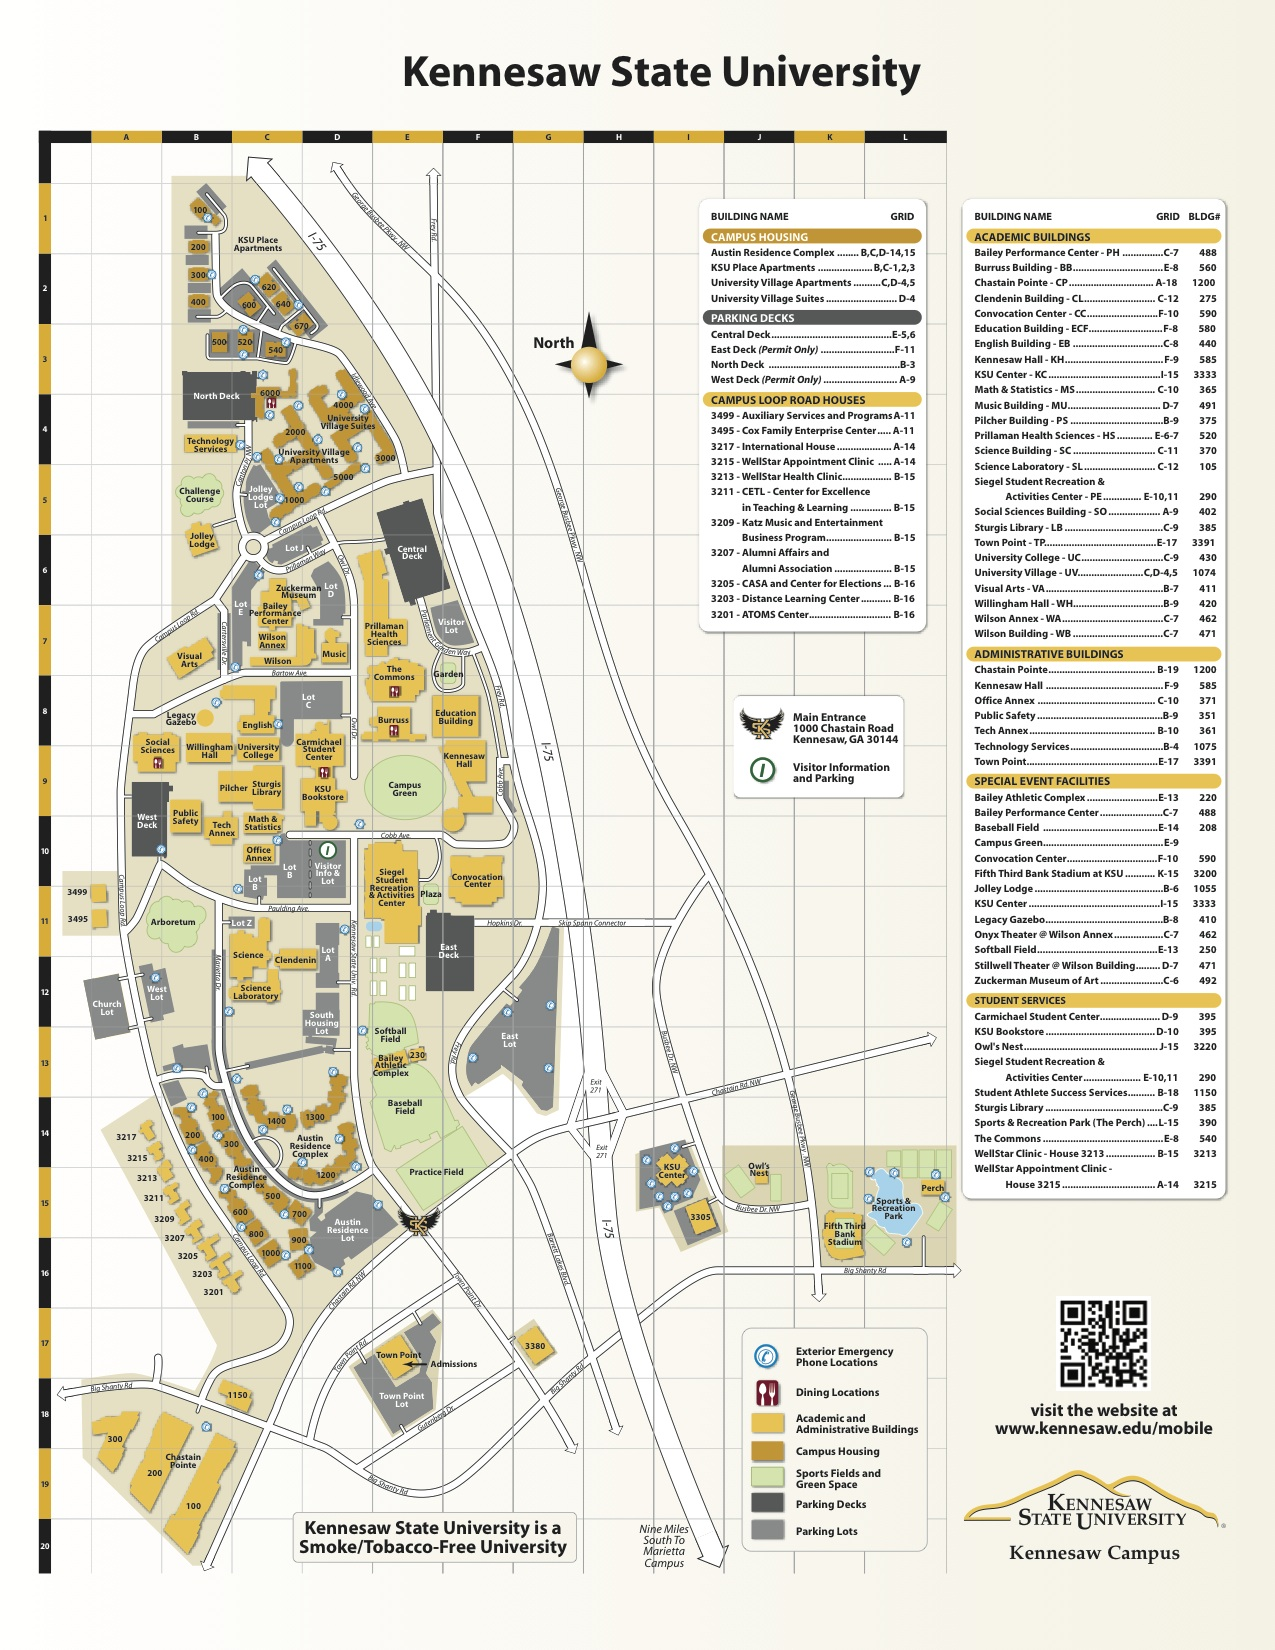 Kennesaw State University Campus Map : kennesaw, state, university, campus, Kennesaw, State, University, Campus, World, Atlas